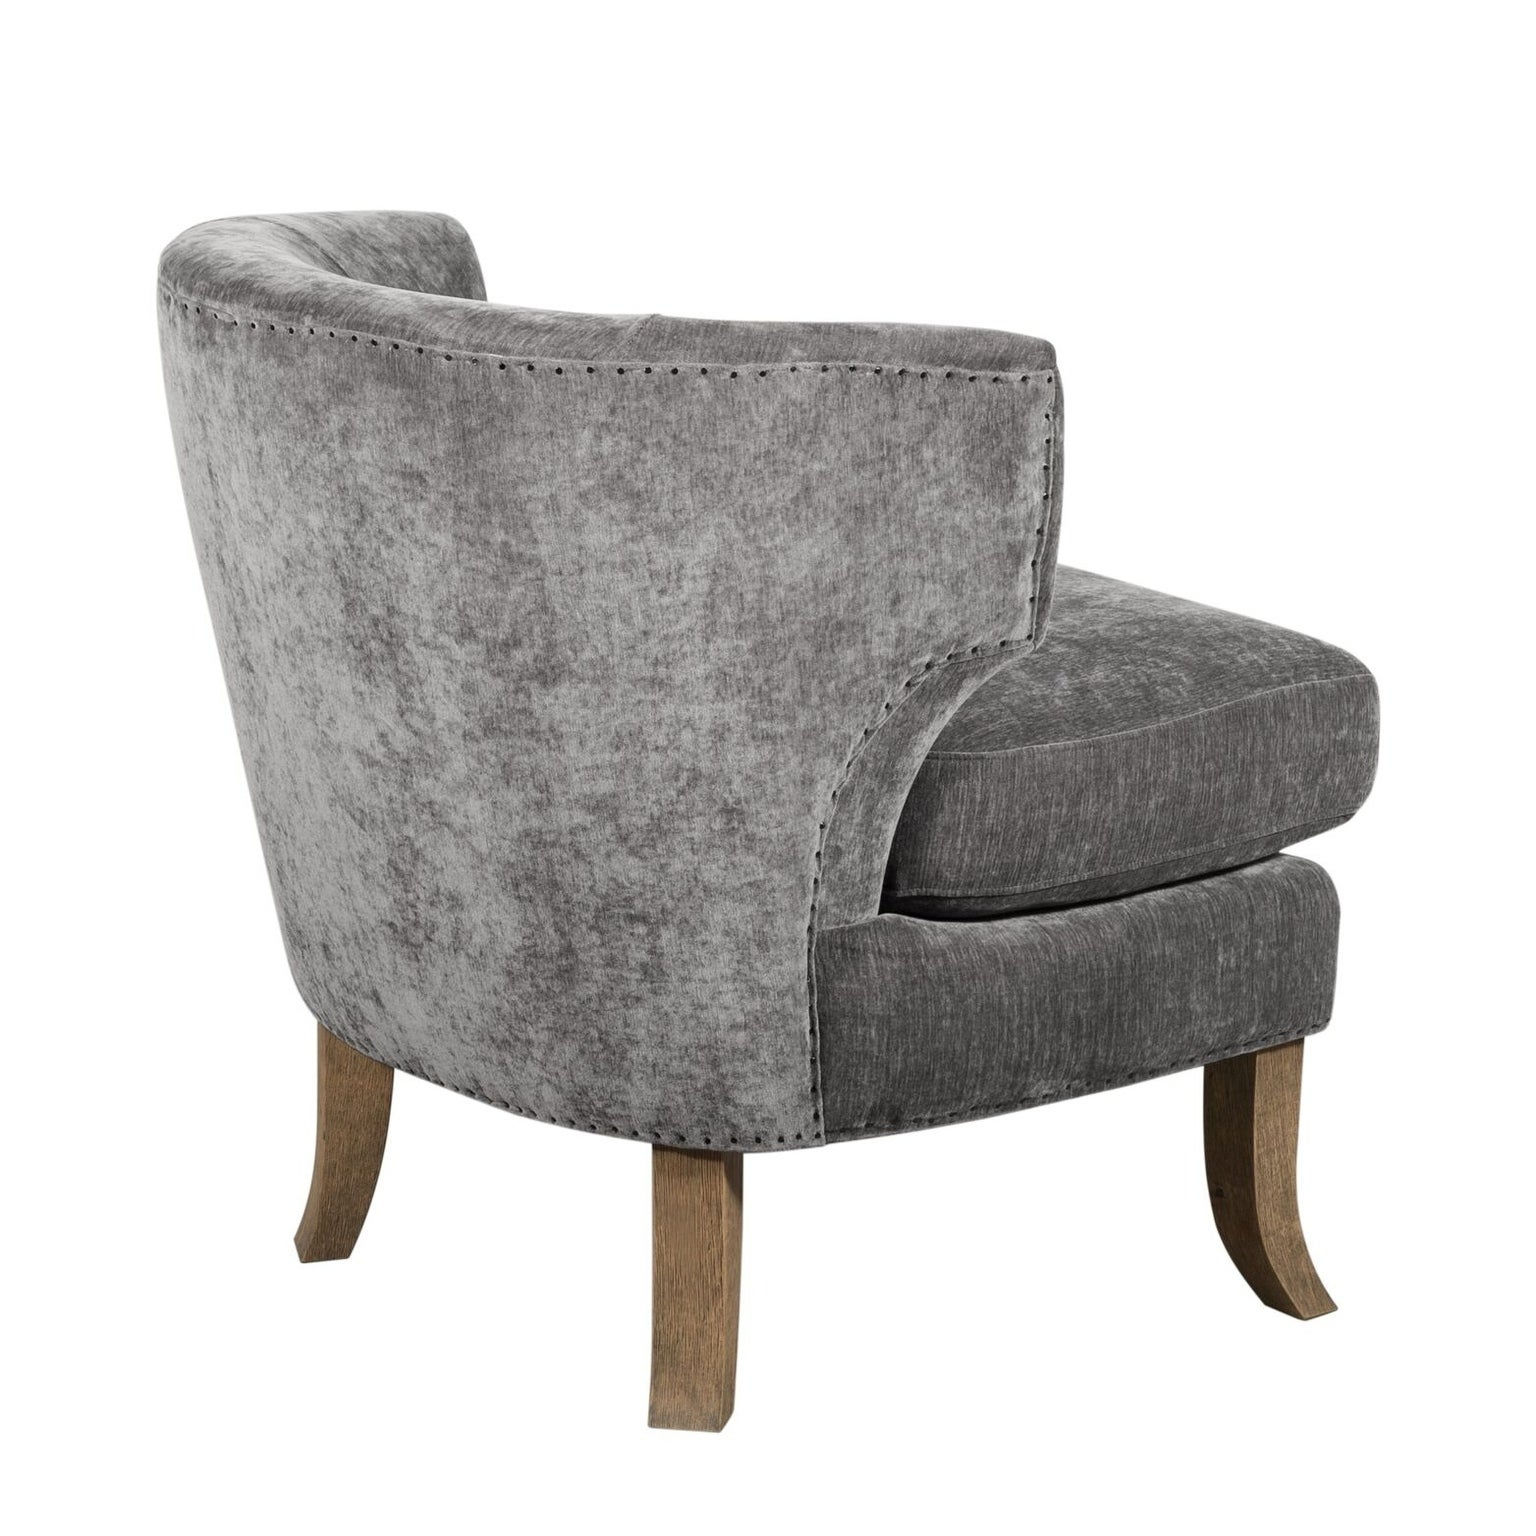 Tommy Hilfiger Swansea Wingback Chair